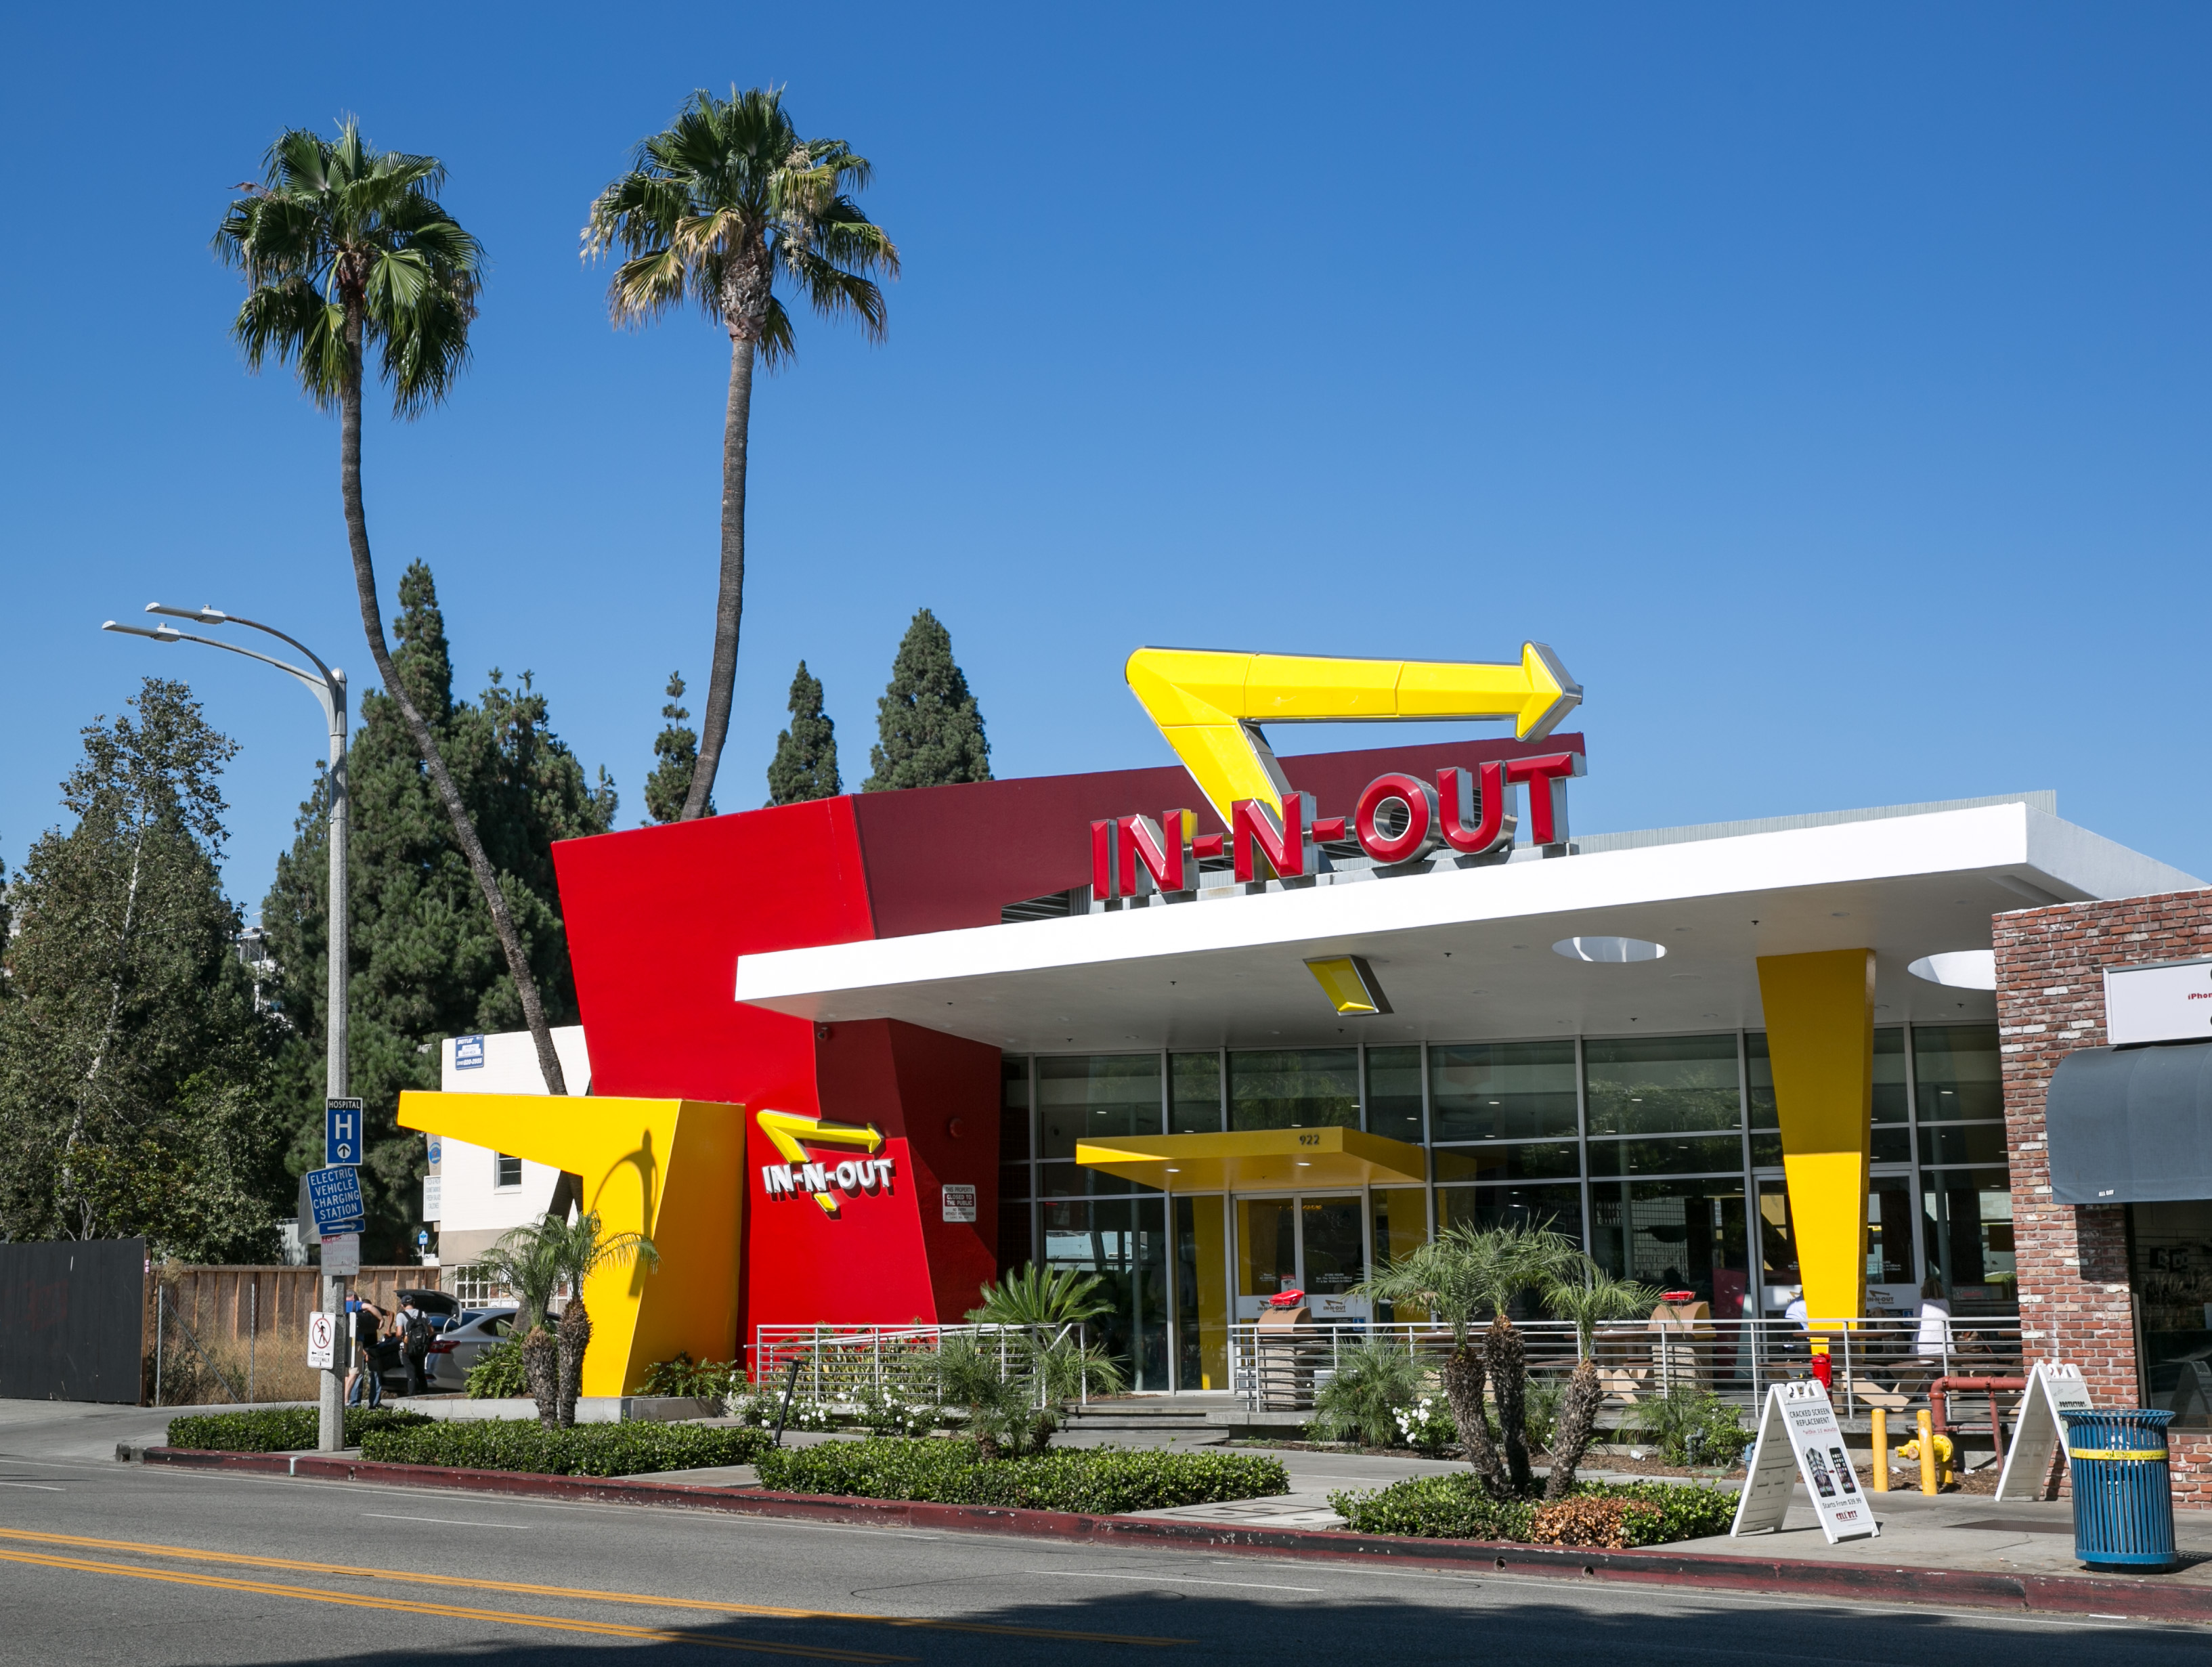 Exploring Southern California's Westwood Village